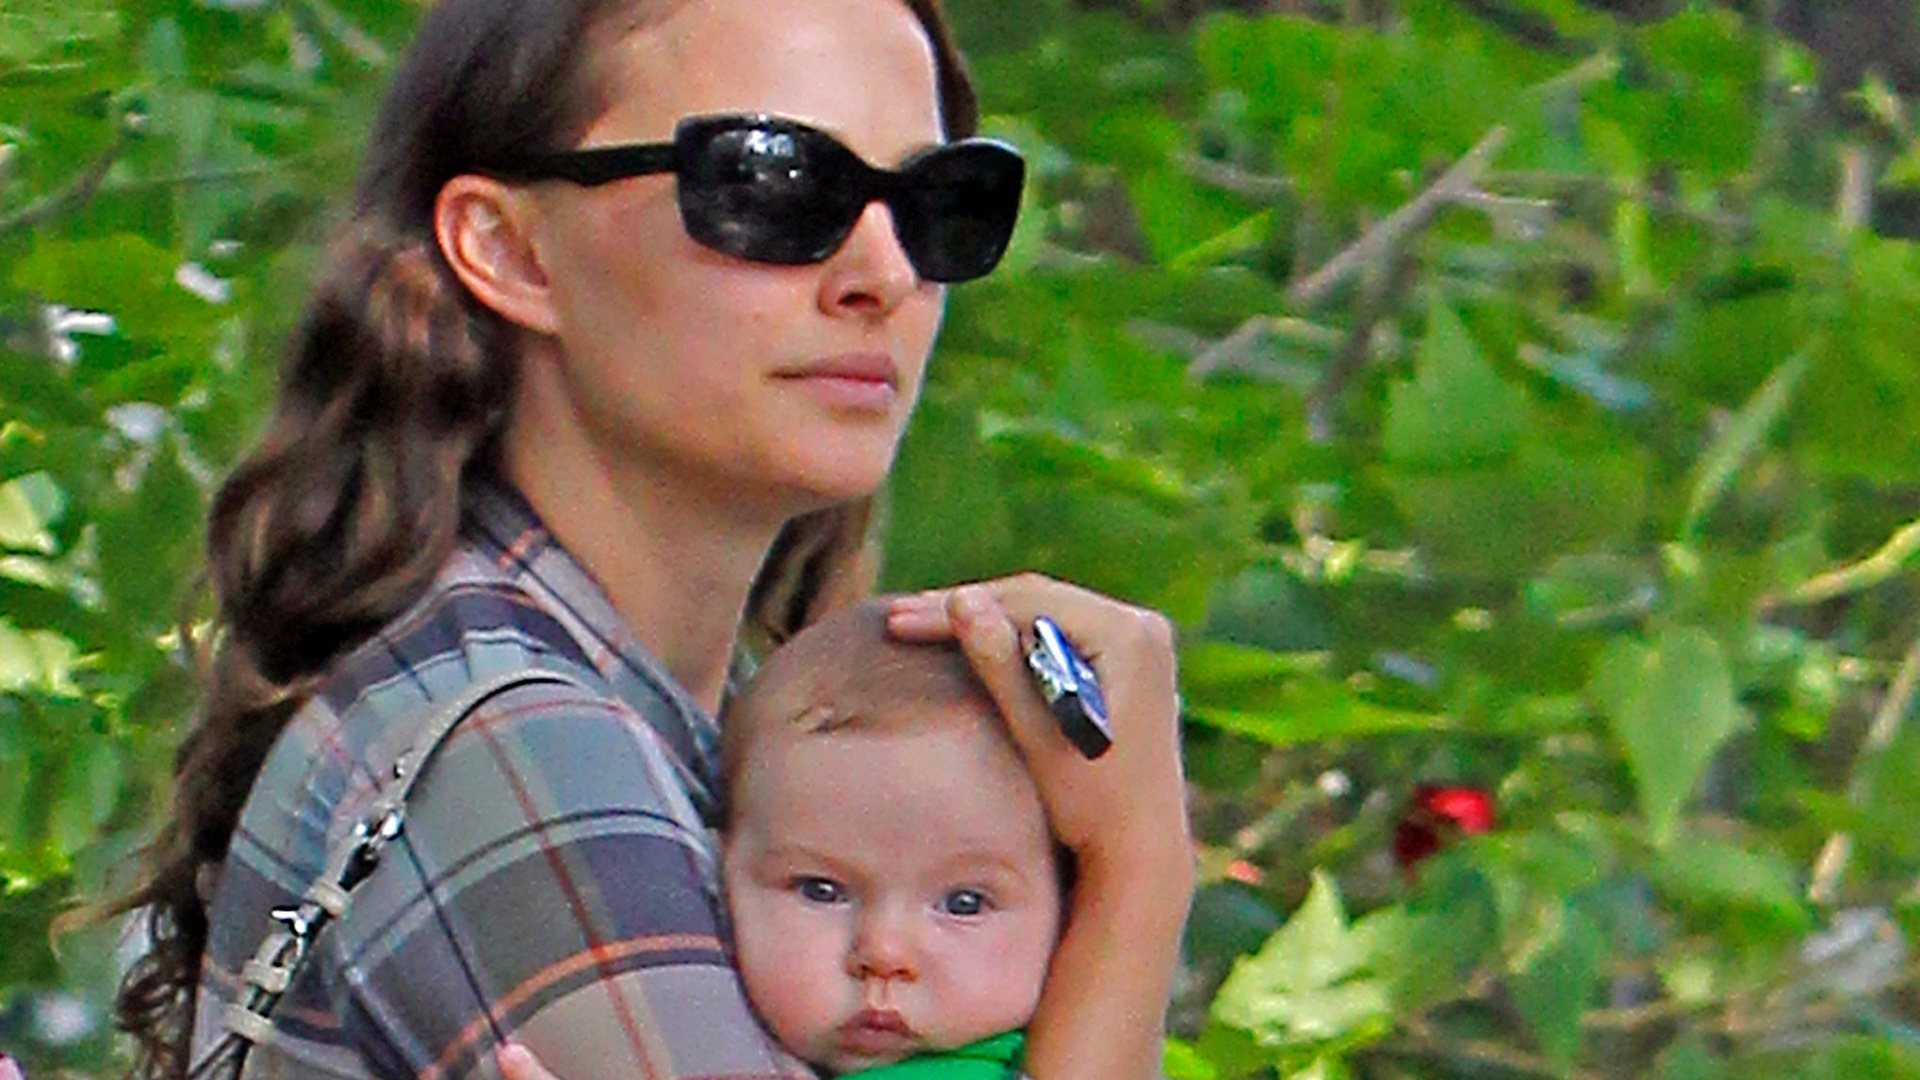 Natalie Portman passeia com o filho recm-nascido, Aleph, em Los Angeles (20/10/2011)